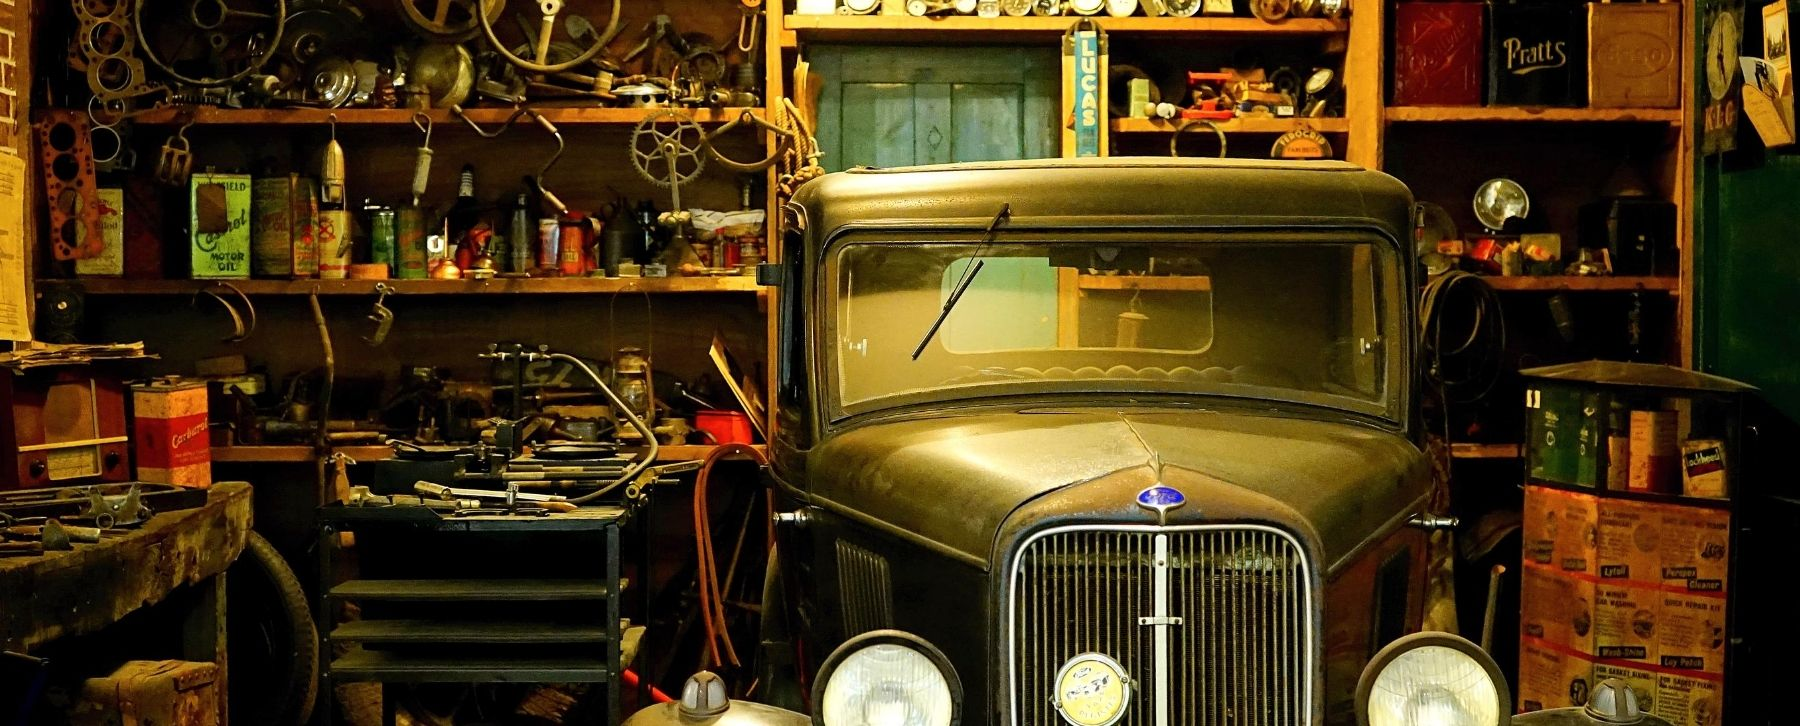 TIPS AND TRICKS FOR YOUR GARAGE